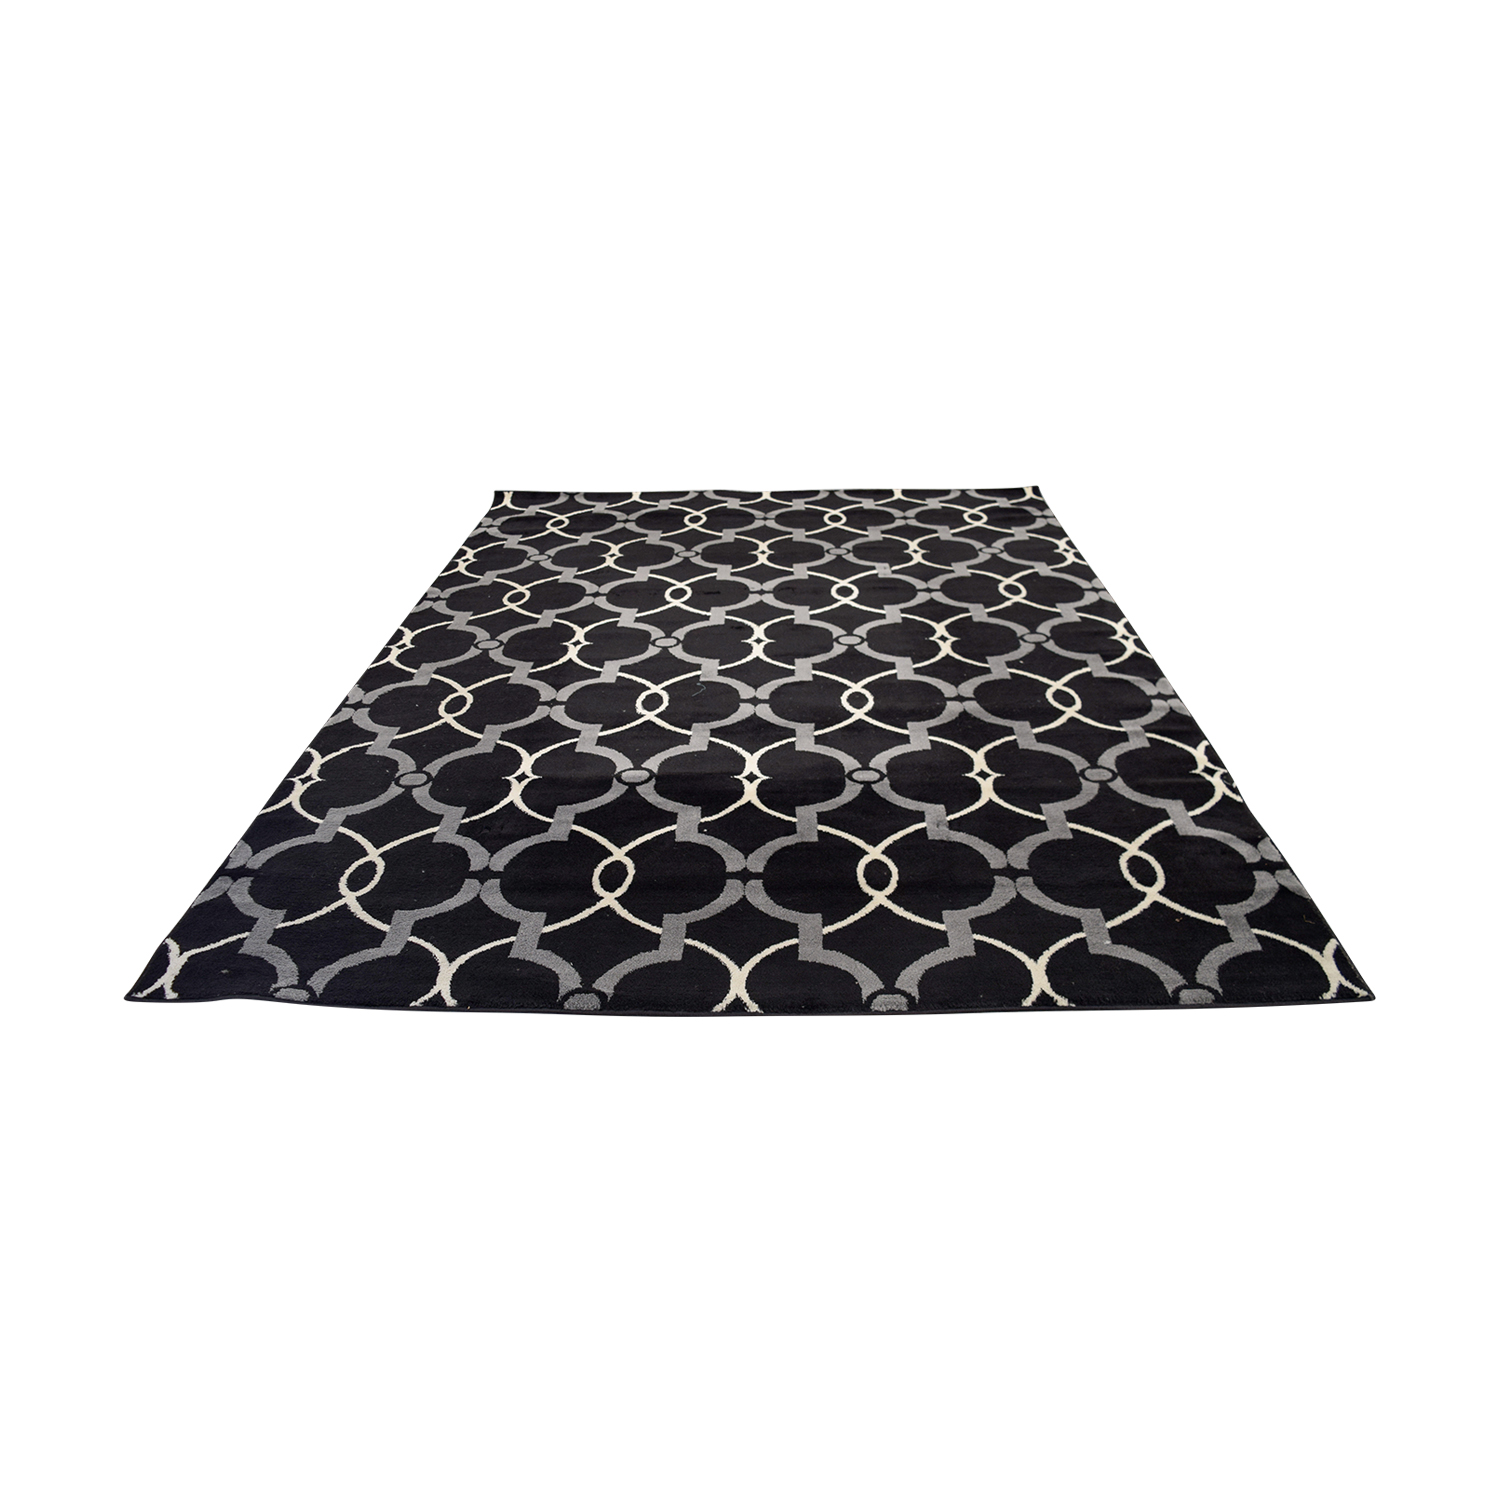 Safavieh Safavieh Black Grey and White Modern Rug used